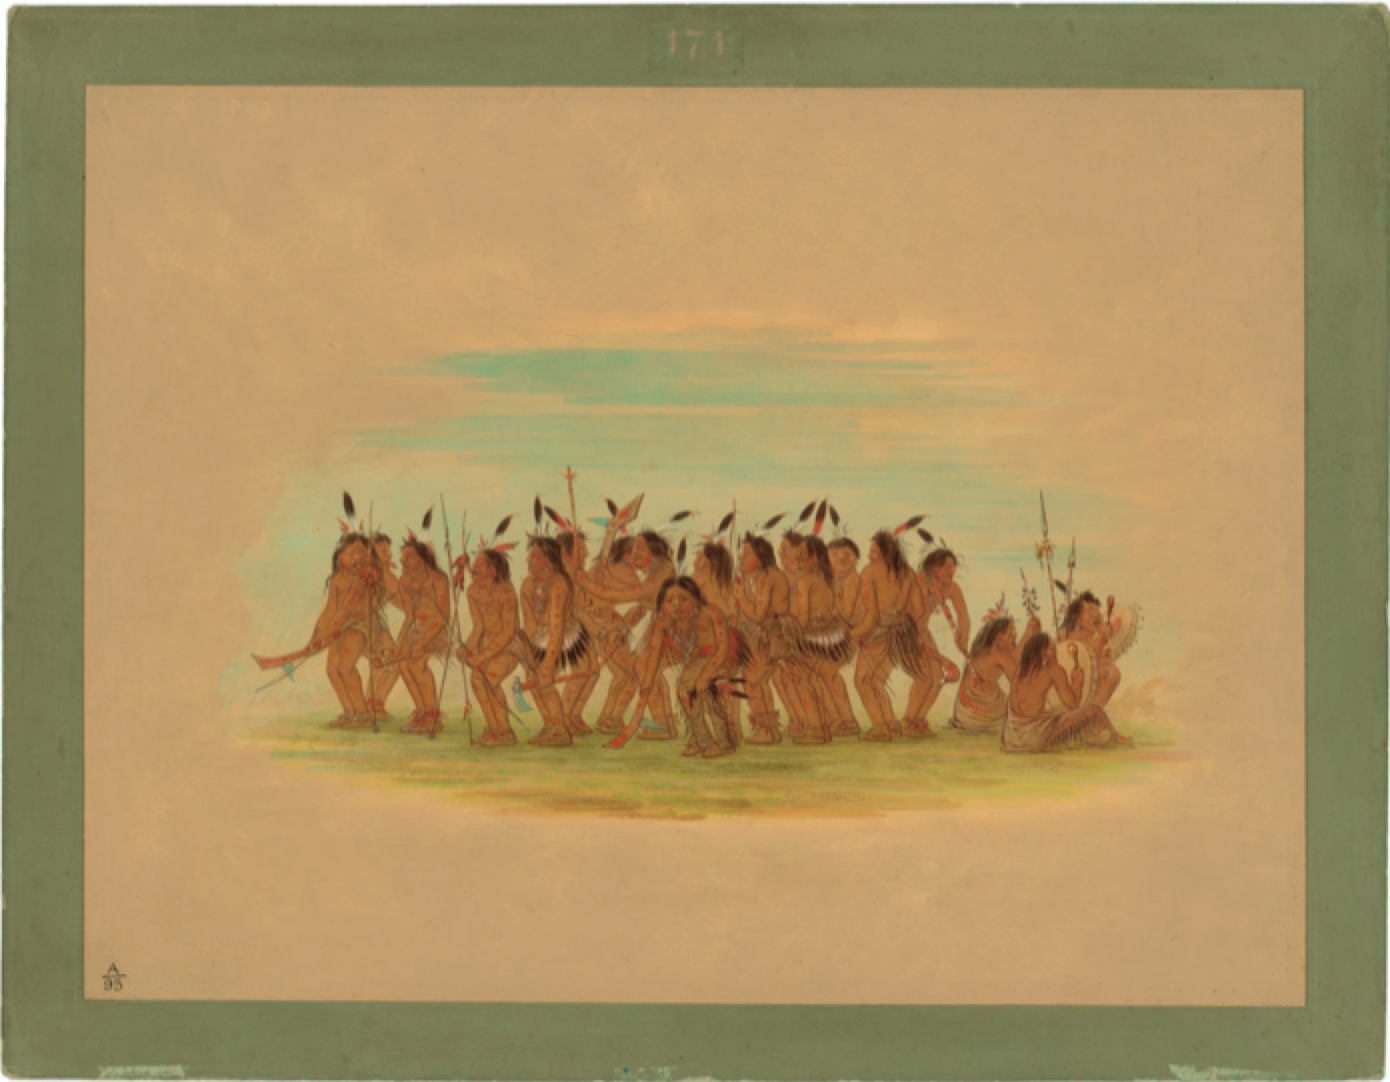 Native American ceremonial dancers painted by George Catlin